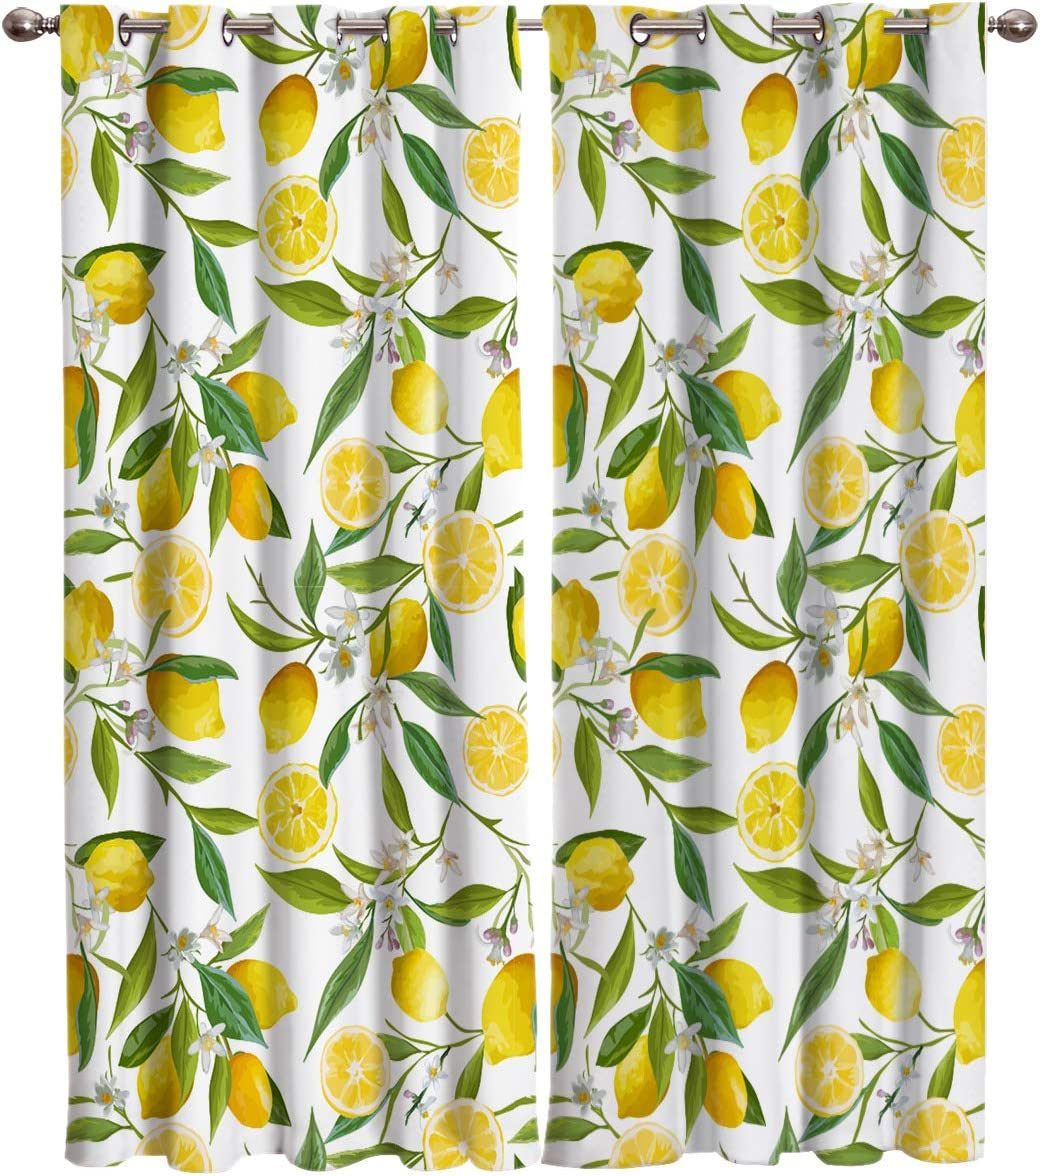 """Printed House Home Decor Window Curtains, Summer Garden Fruit Lemon Slice and Leaves - 2 Panel Window Treatment Set with Grommet Window Drapes Covering for Kitchen Cafe Living Room 80"""" W x 63"""" L"""